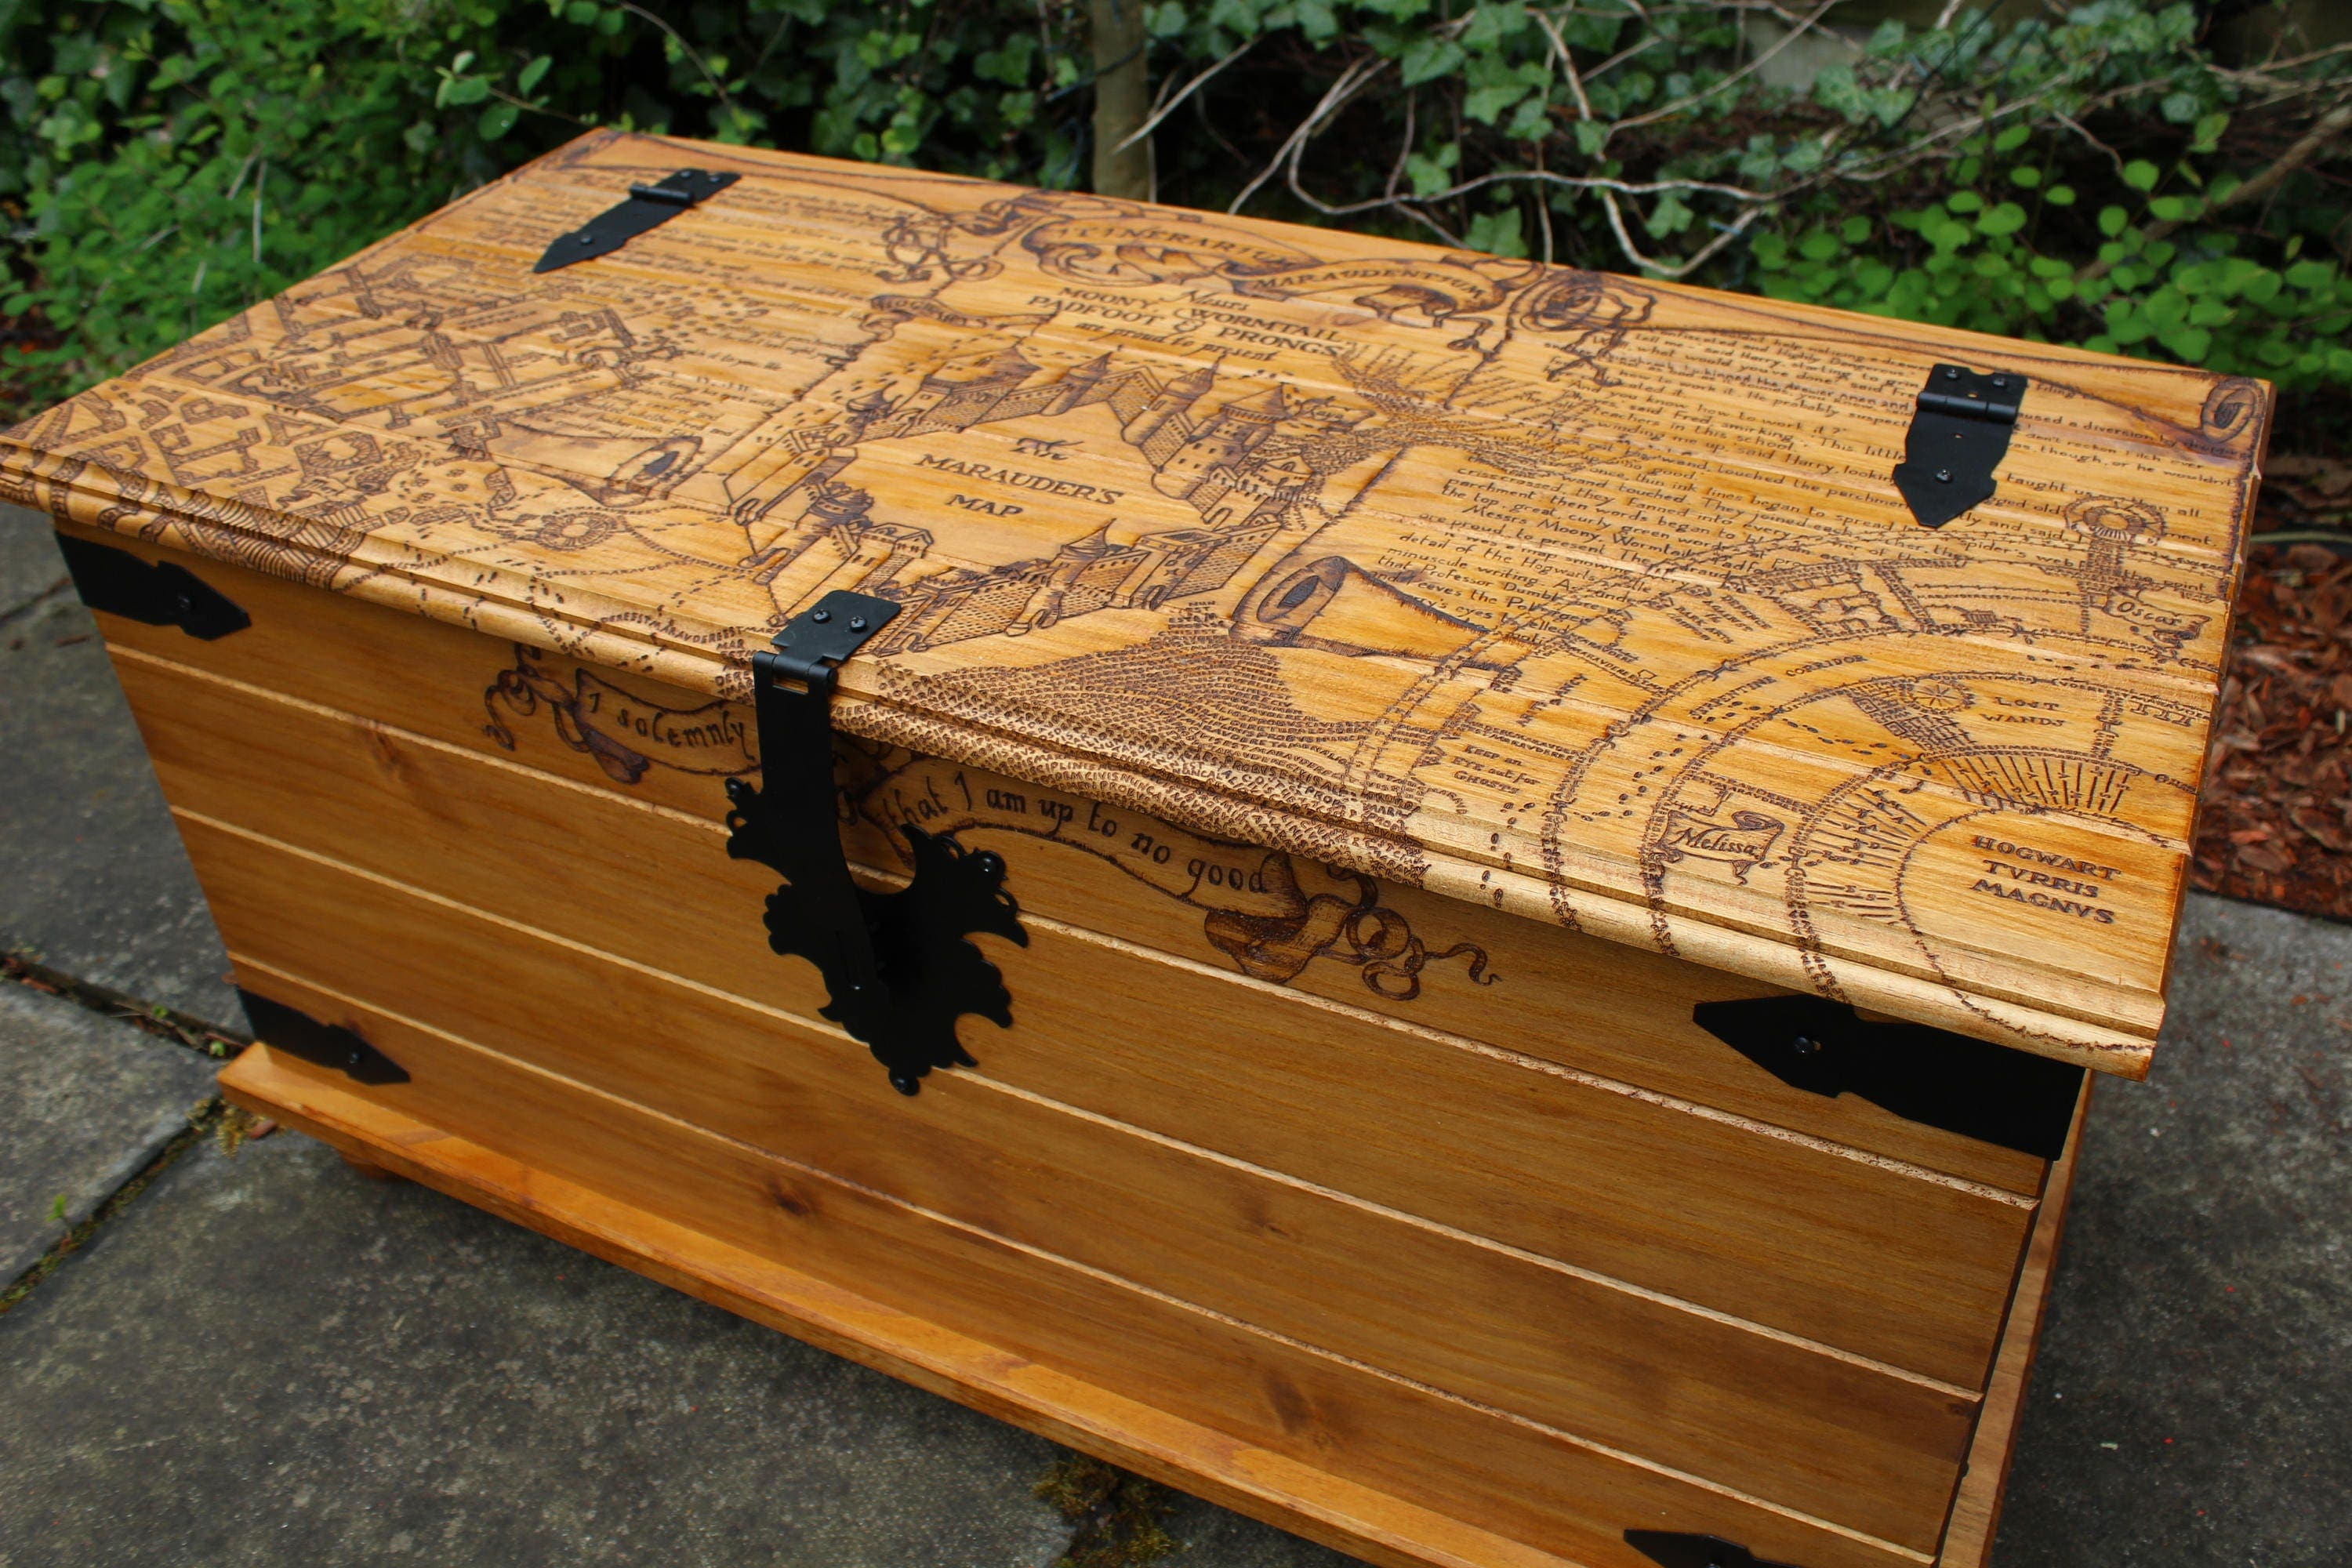 Marauders Map Harry Potter Trunk Chest Wood Burning Furniture Hogwarts Coffee Table Rustic Wood Table Quirky Solemnly Swear Blanket Box Book